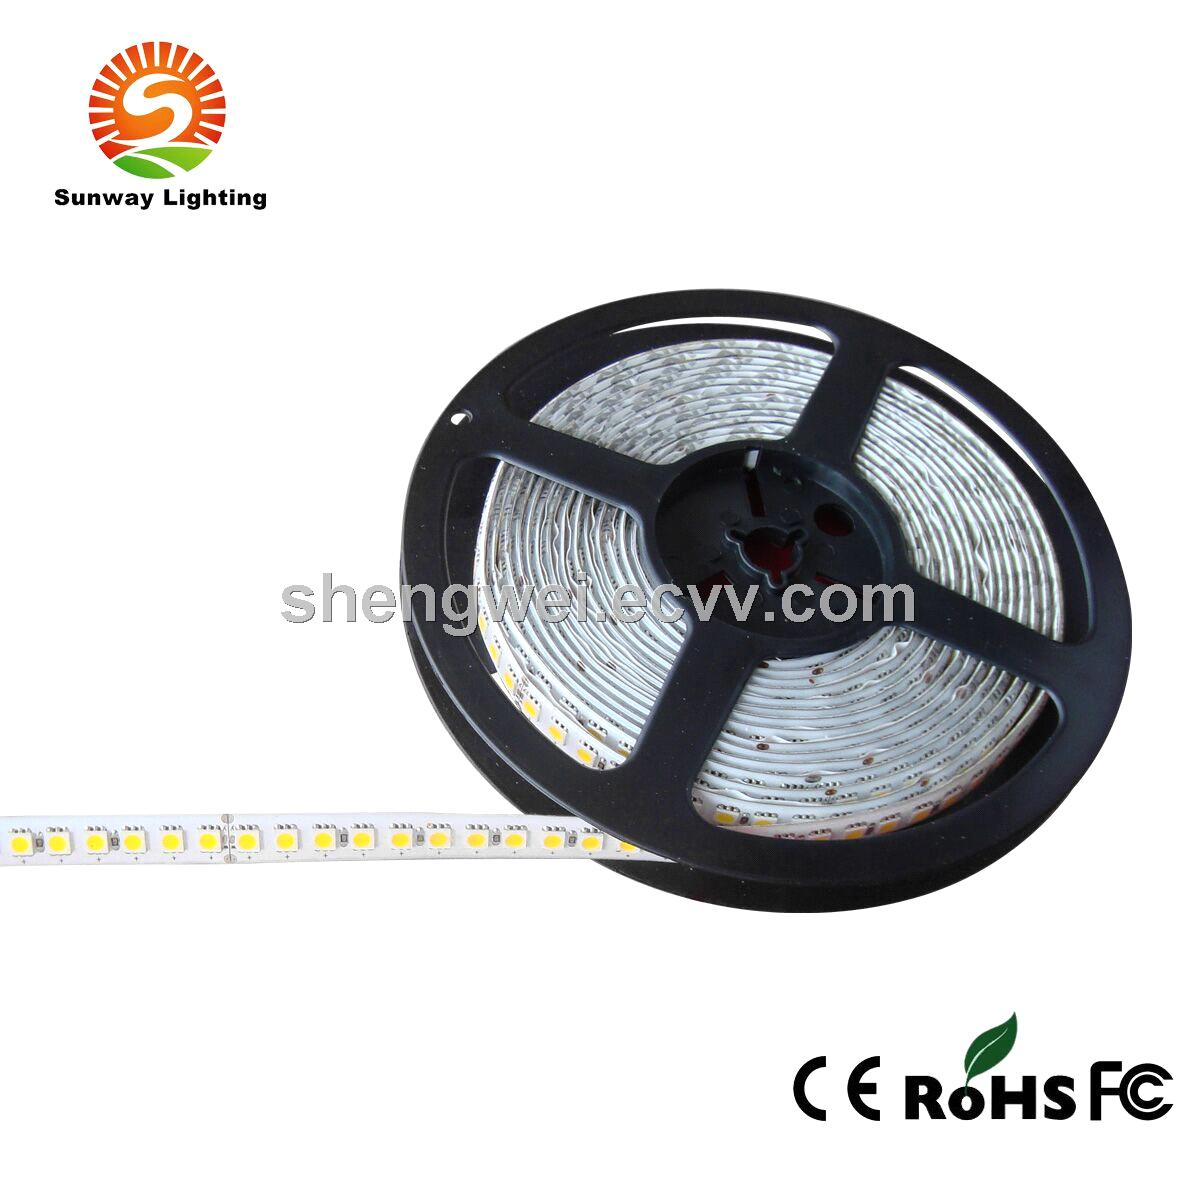 Sunway Digital 3528 LED Strip WS2811 Strip LED